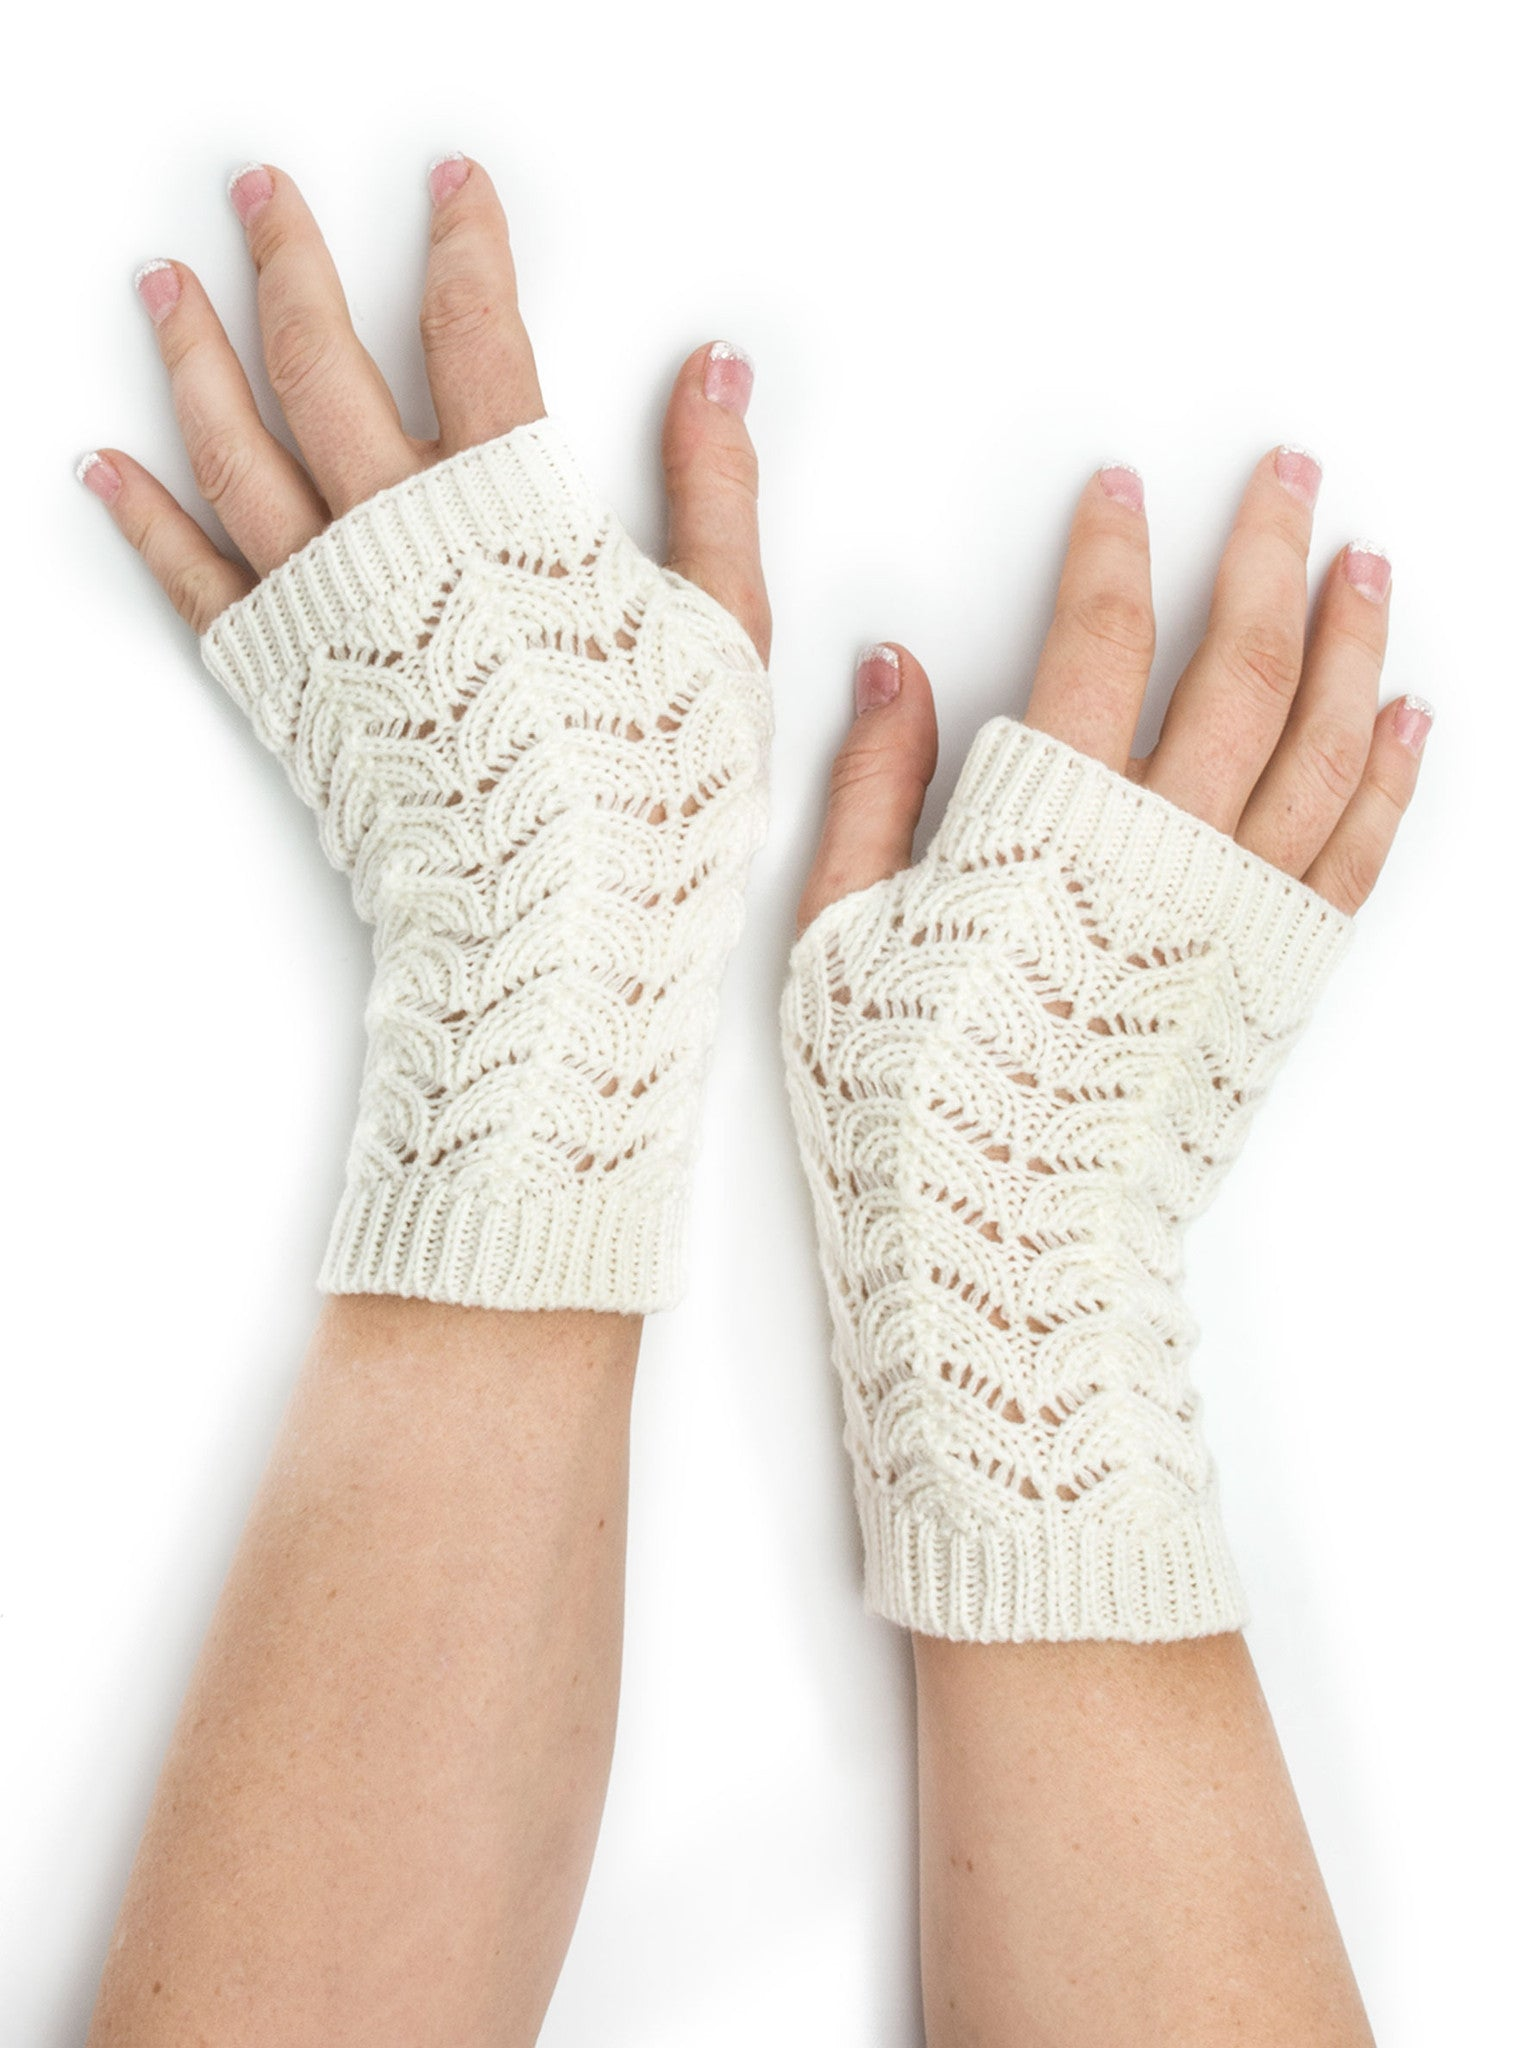 Armwarmers - Maeve Scallop Open Lace Crochet Pattern Fingerless Gloves / Armwarmers -(White) Bohomonde  - 4